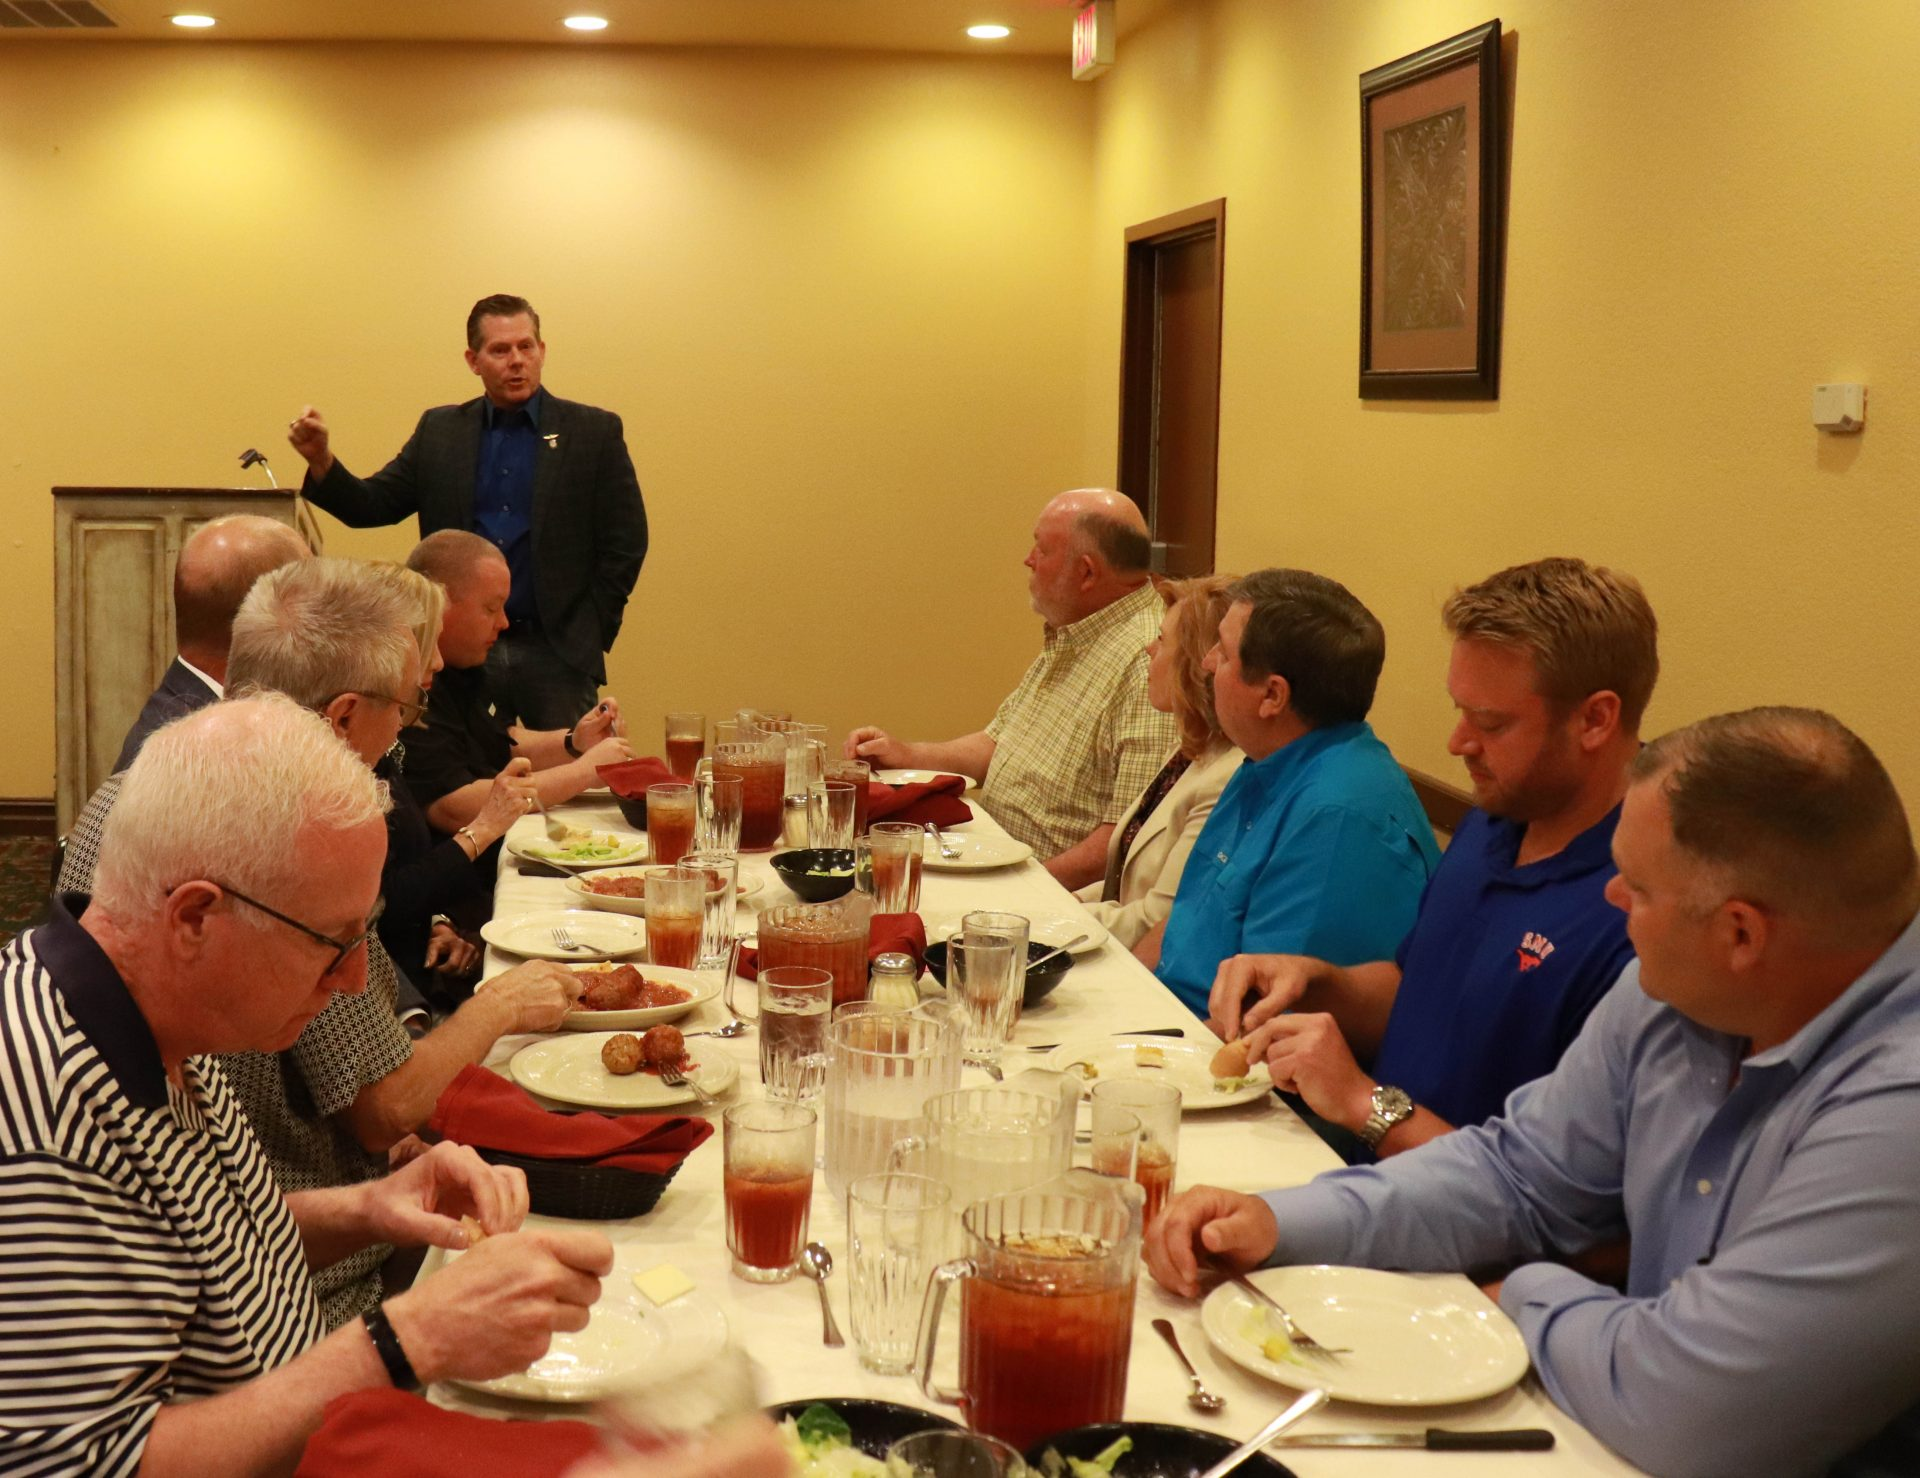 Rep. Kevin McDugle speaks to a group of legislators sitting down for lunch inside Pete's Place.